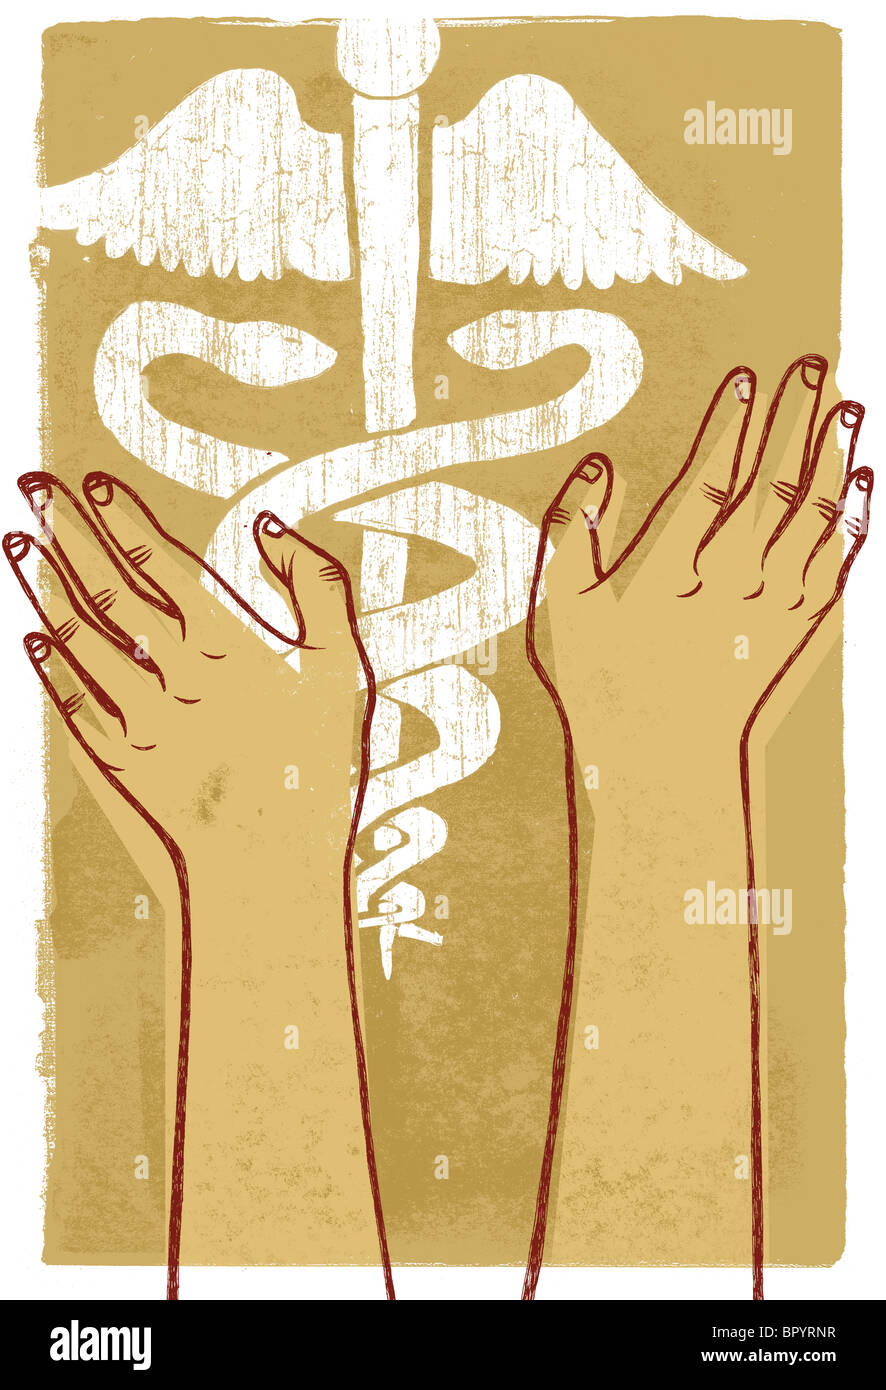 Two human hands reaching for a caduceus - Stock Image